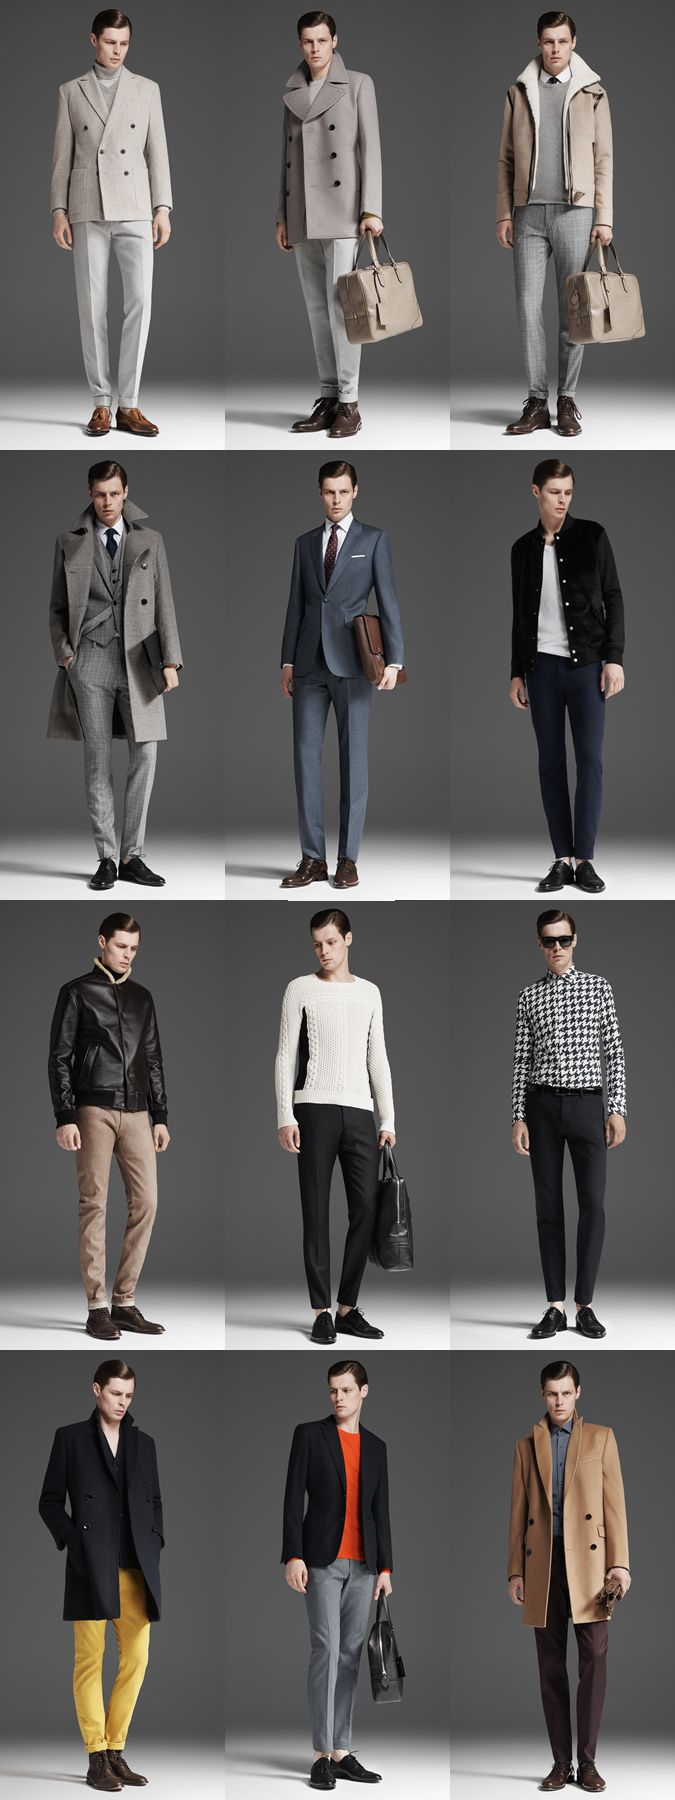 Reiss AW13 Lookbook - Dapperness